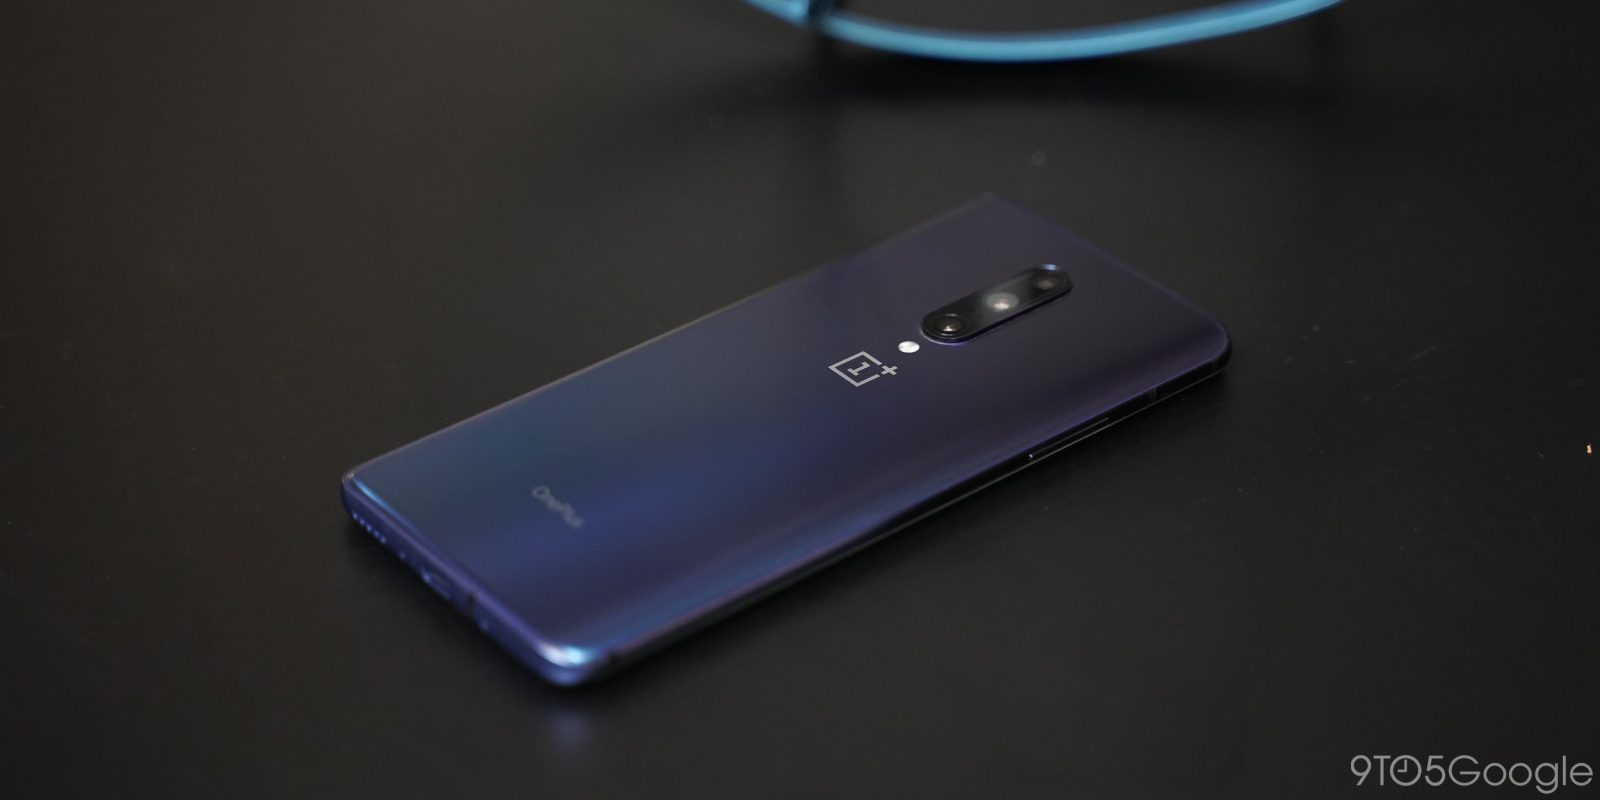 OnePlus 7 Pro: A second opinion on a simply great smartphone